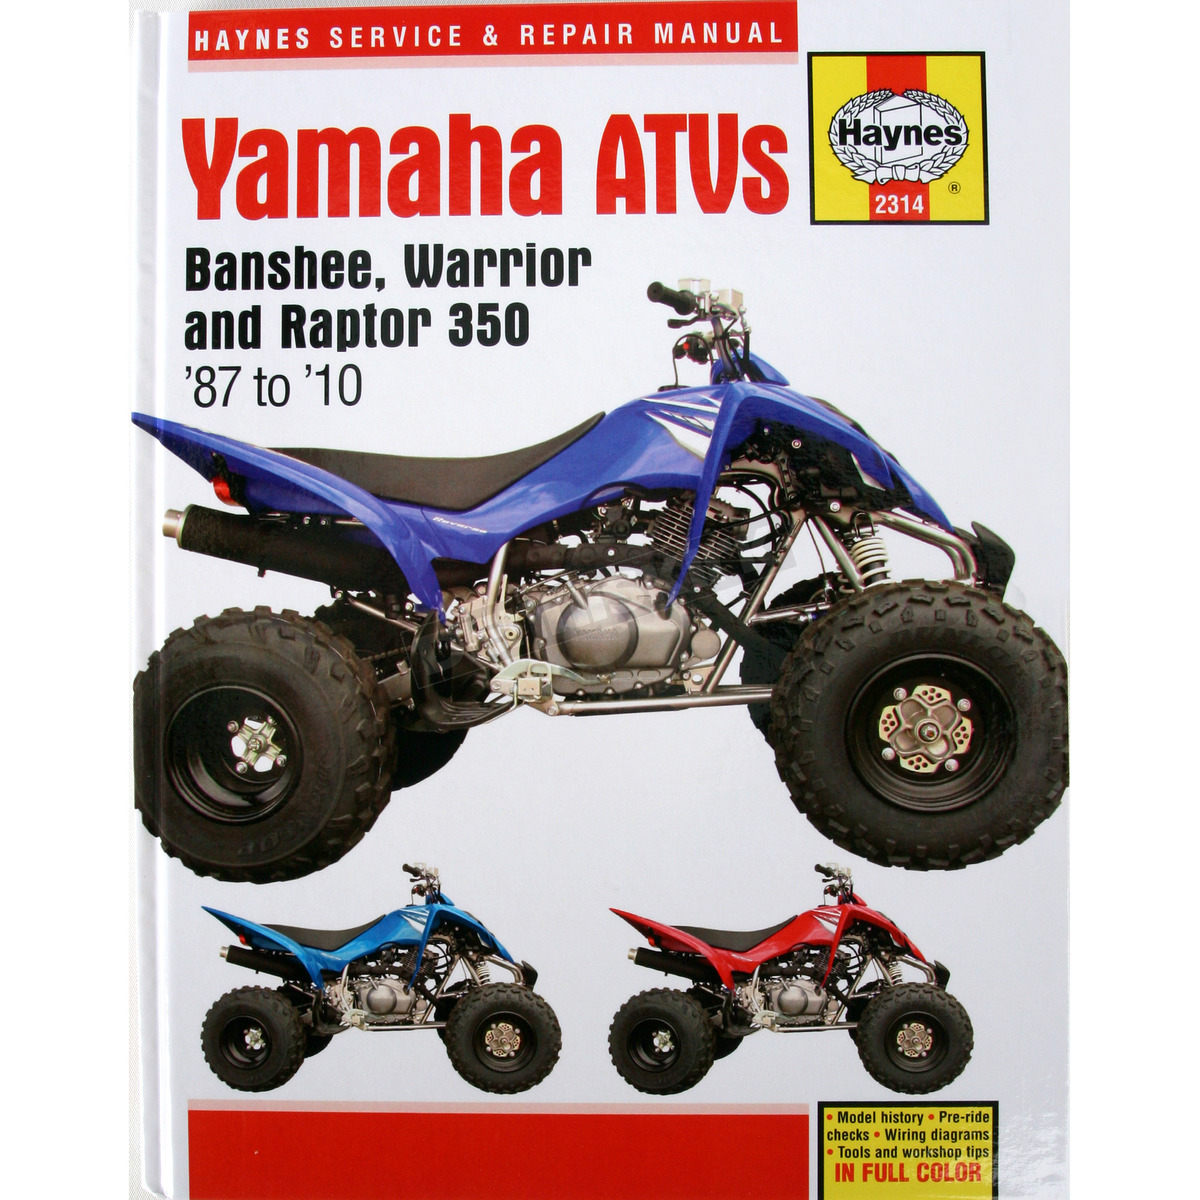 Haynes Yamaha Repair Manual - 2314